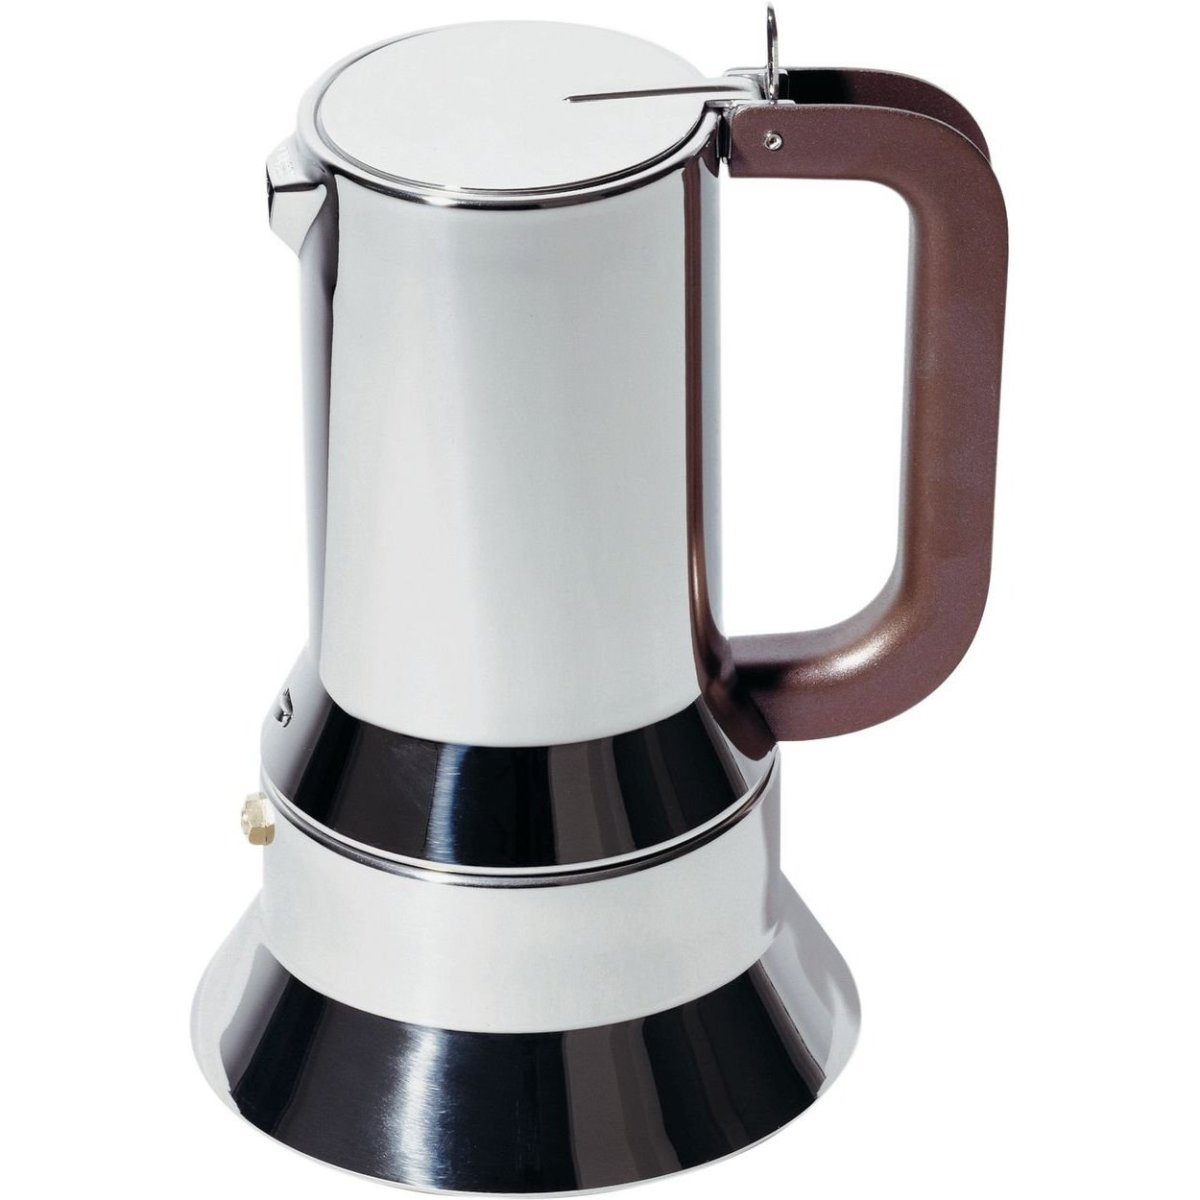 Stainless steel stovetop espresso maker 10 cup - Stainless Steel Stovetop Espresso Maker 10 Cup 1